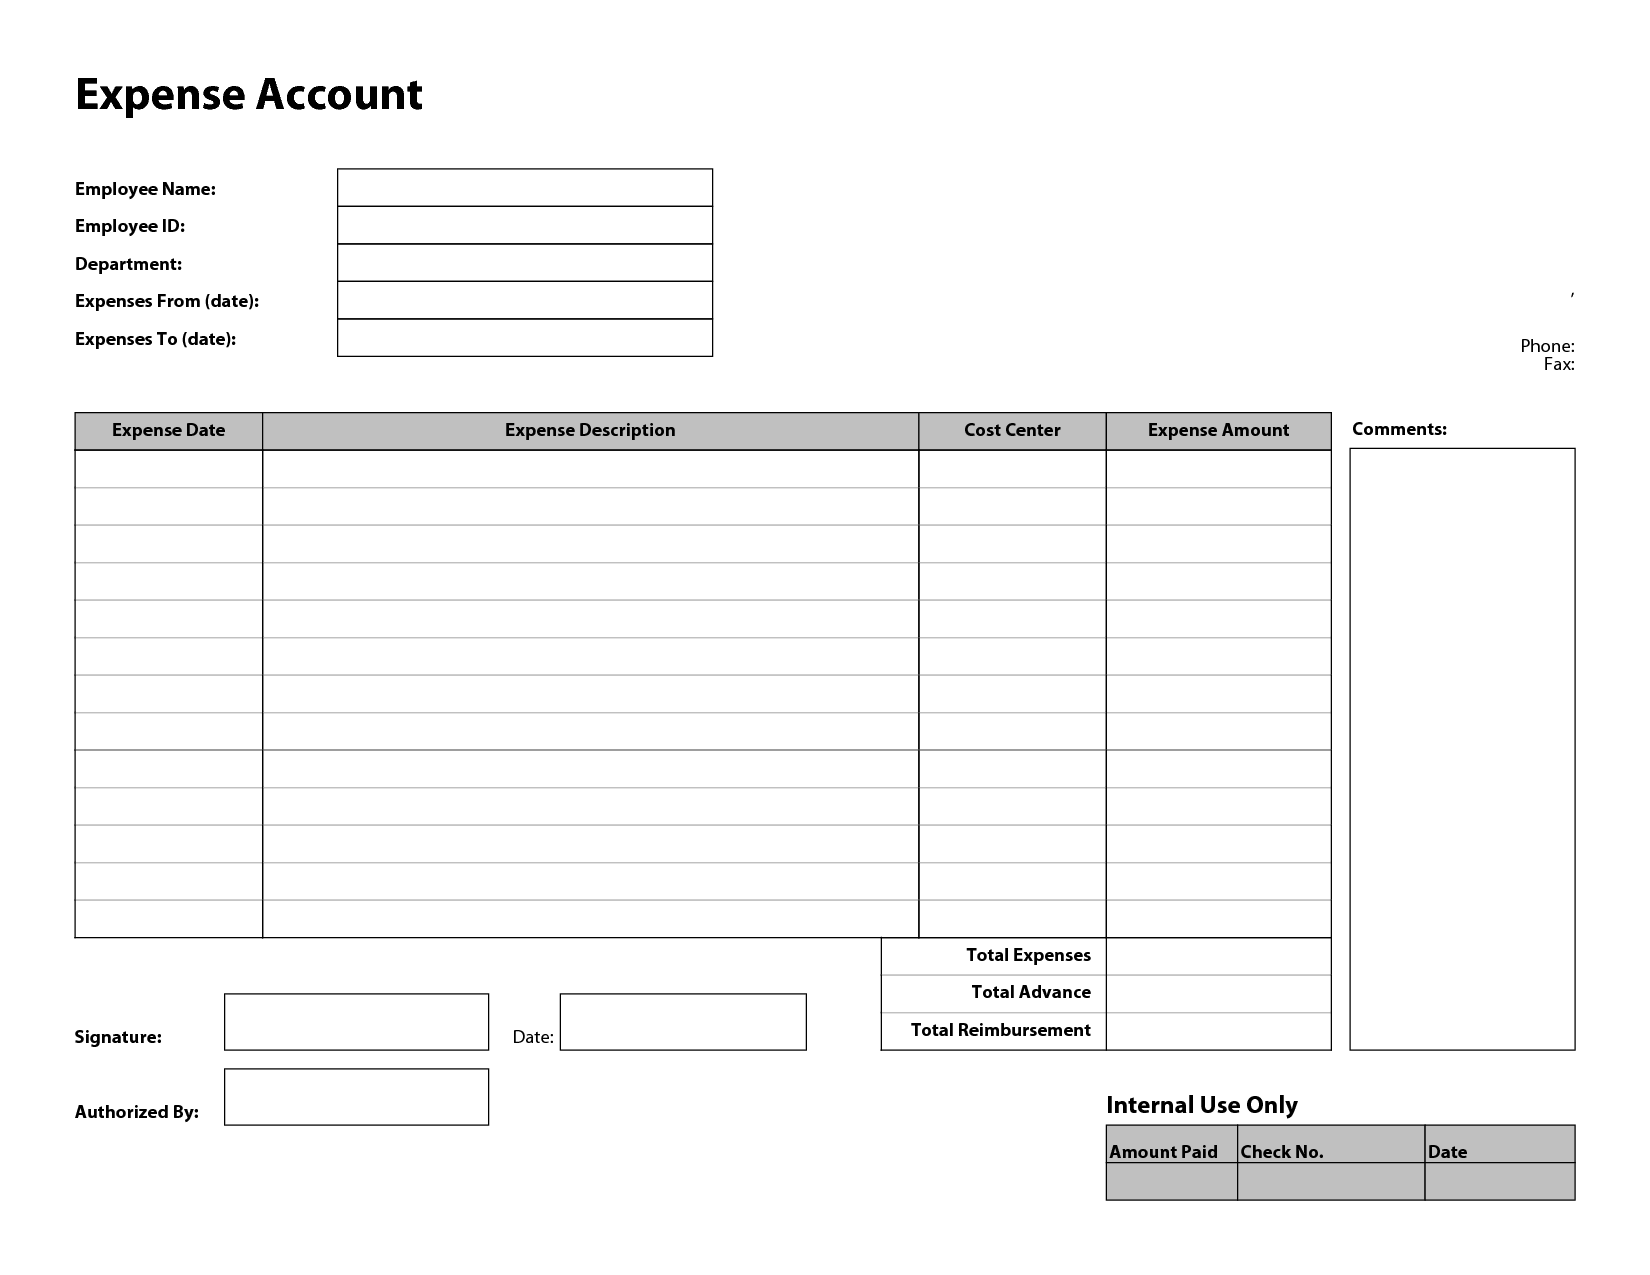 Free Expense Report Form Template | BudFam evites | Pinterest ...